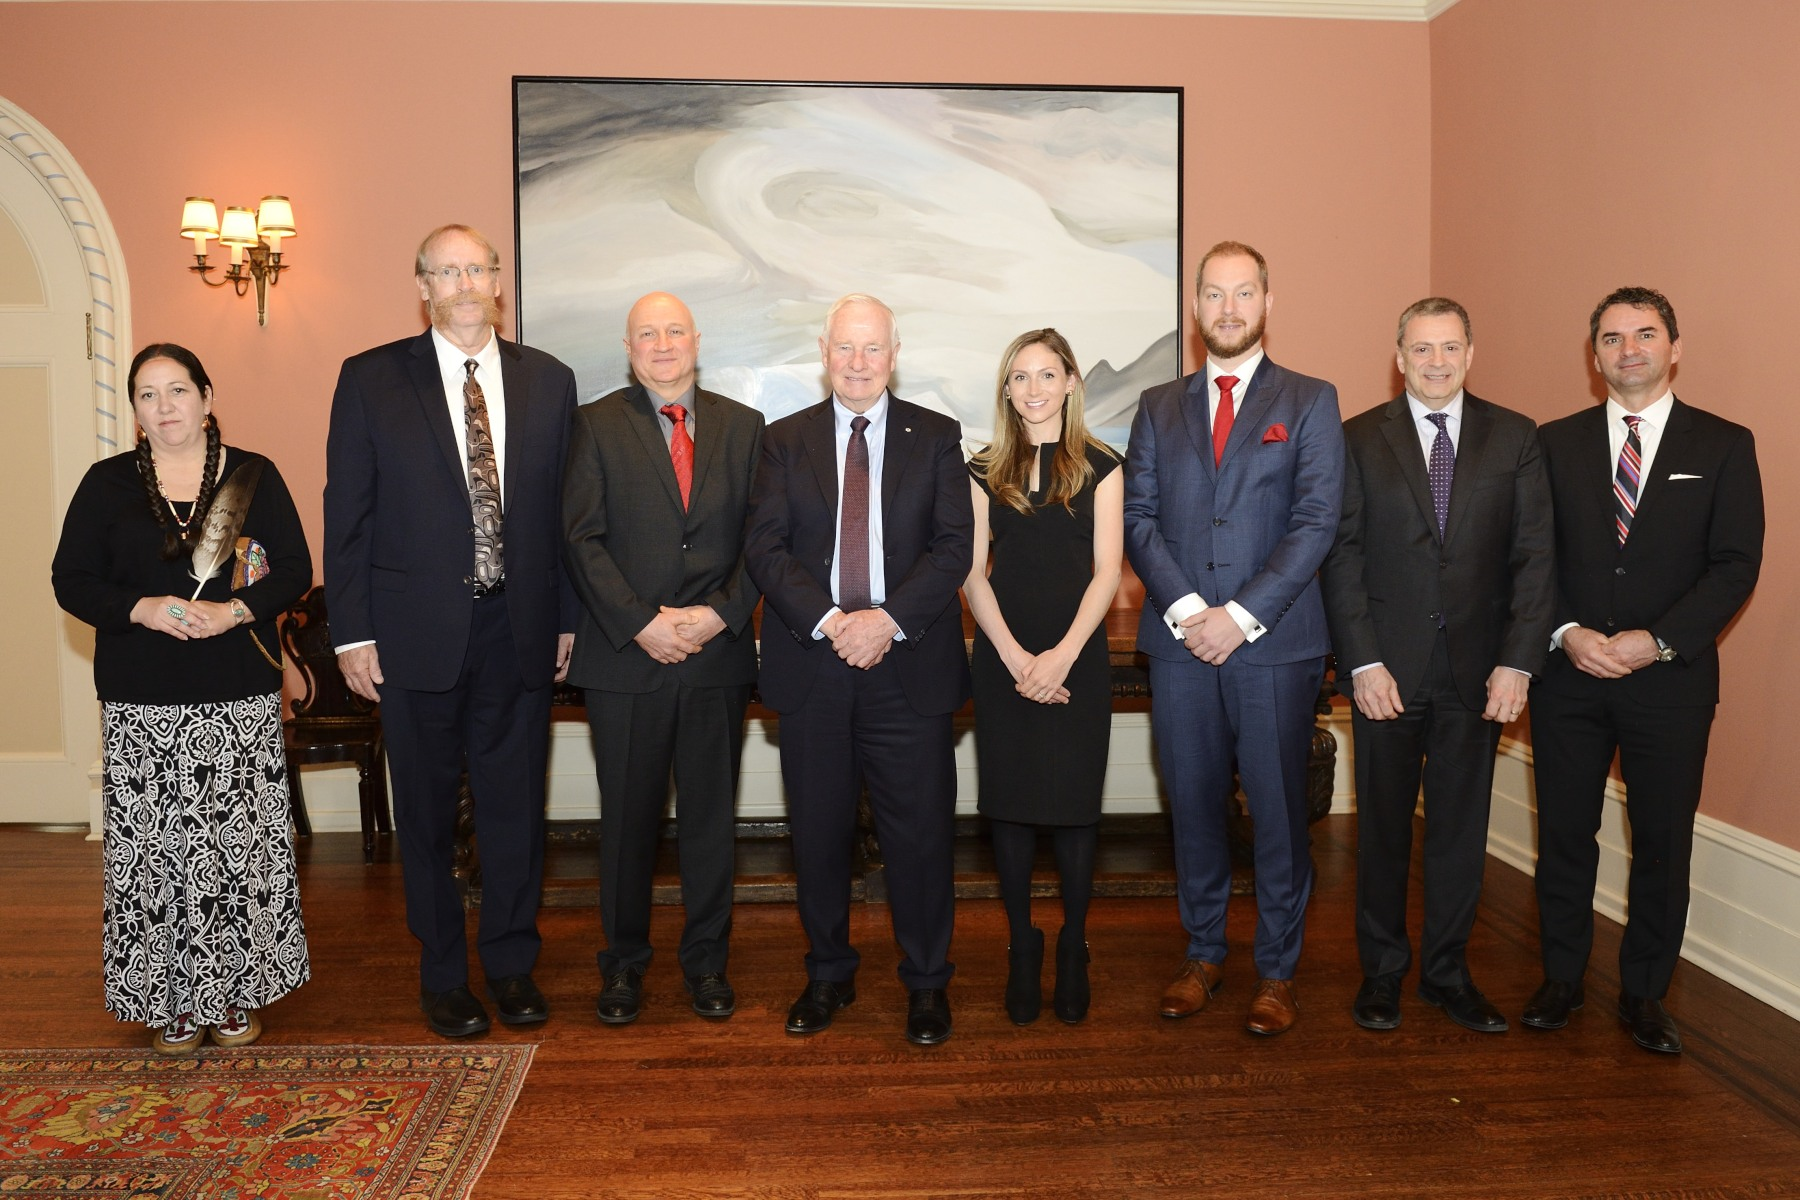 The 2016 Governor General Awards winners: Christi Belcourt, Robert Burrell, Jeff Dahn, Breanne Everett, Kinova (represented by Charles Deguire), Mark Torchia and Richard Tyc.